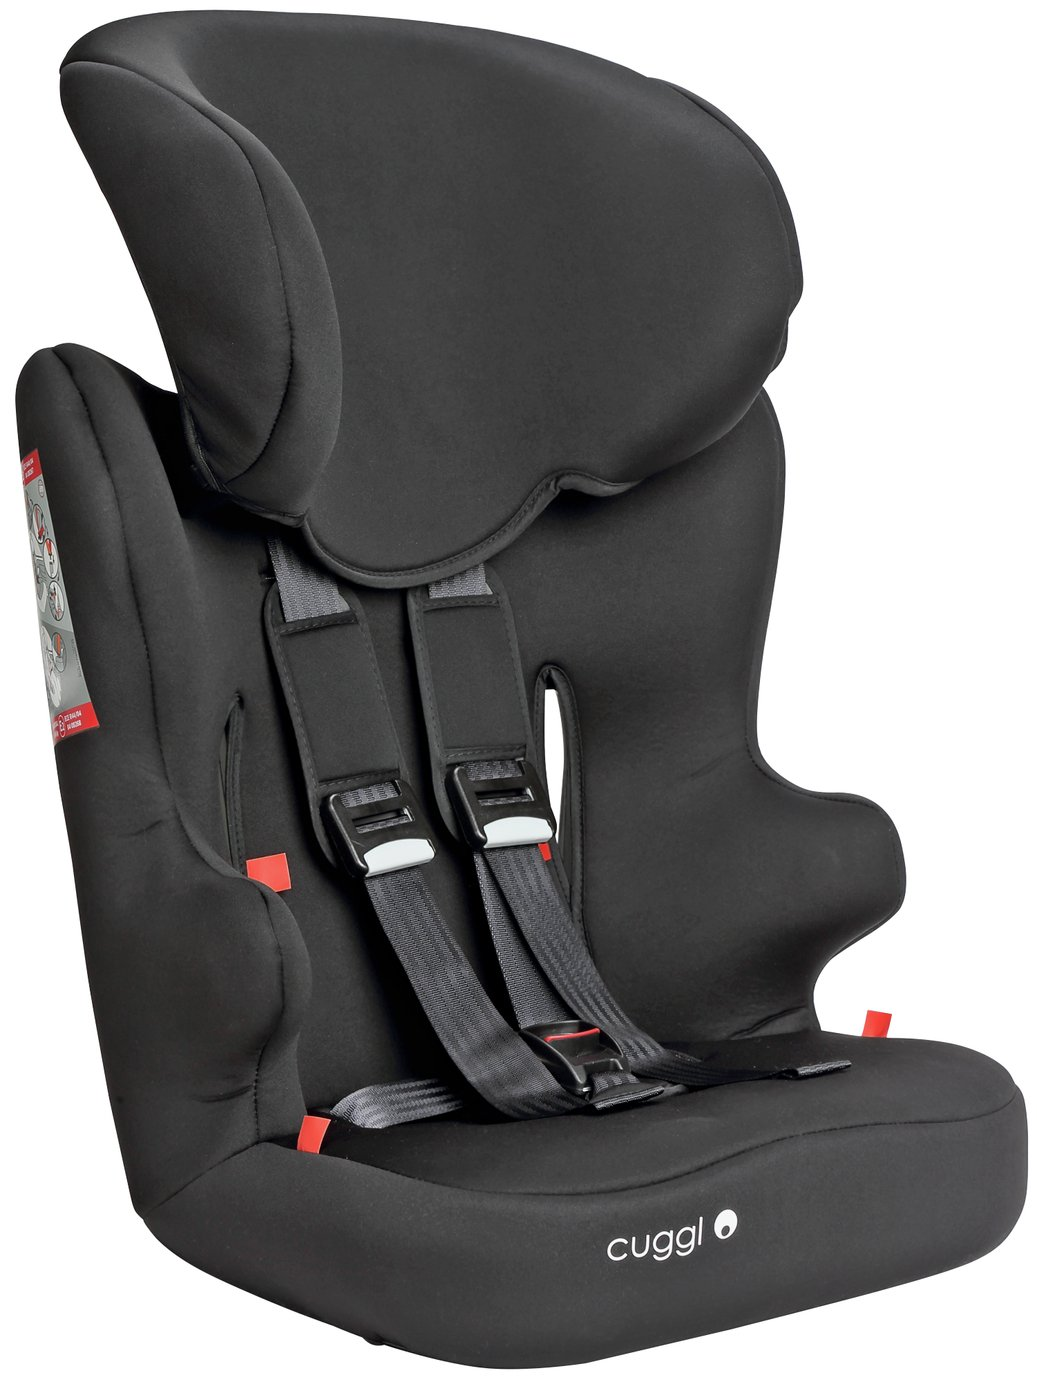 Cuggl Chaffinch Group 1/2/3 Car Seat - Black from Cuggl